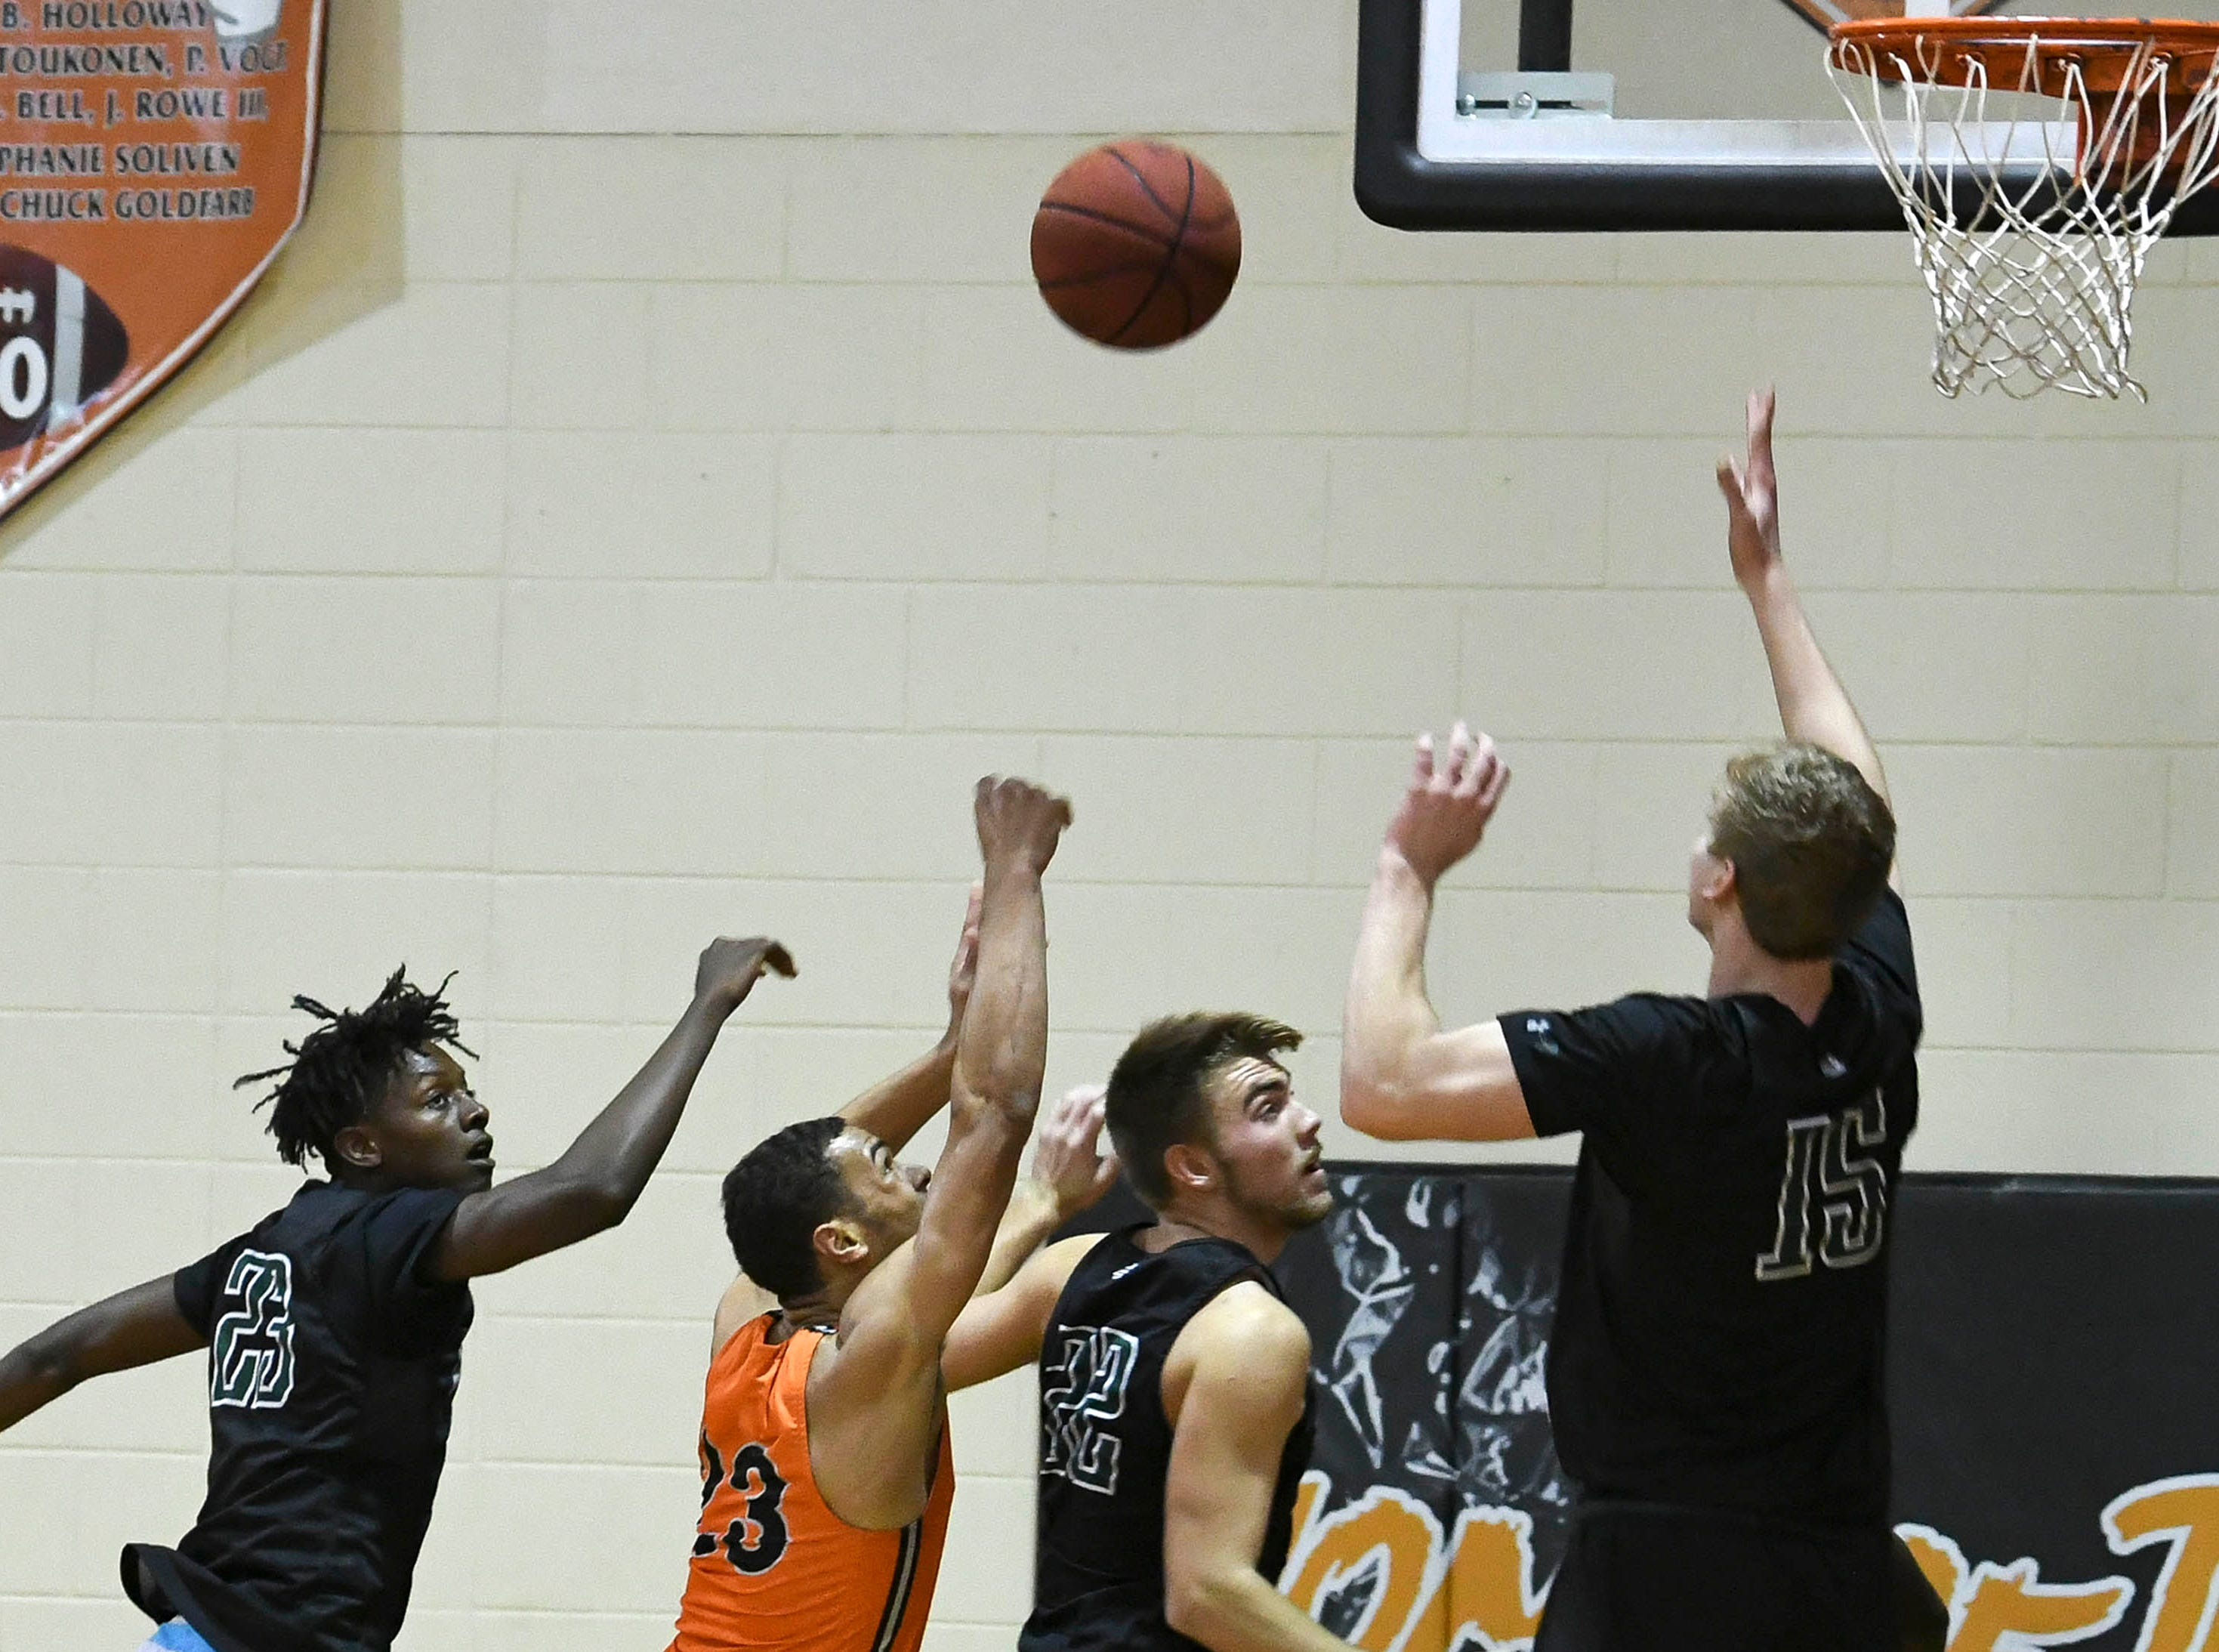 Cocoa's Joseph Cartwright (23) takes a shot in heavy Melbourne traffic during the game Thursday at Cocoa High School.